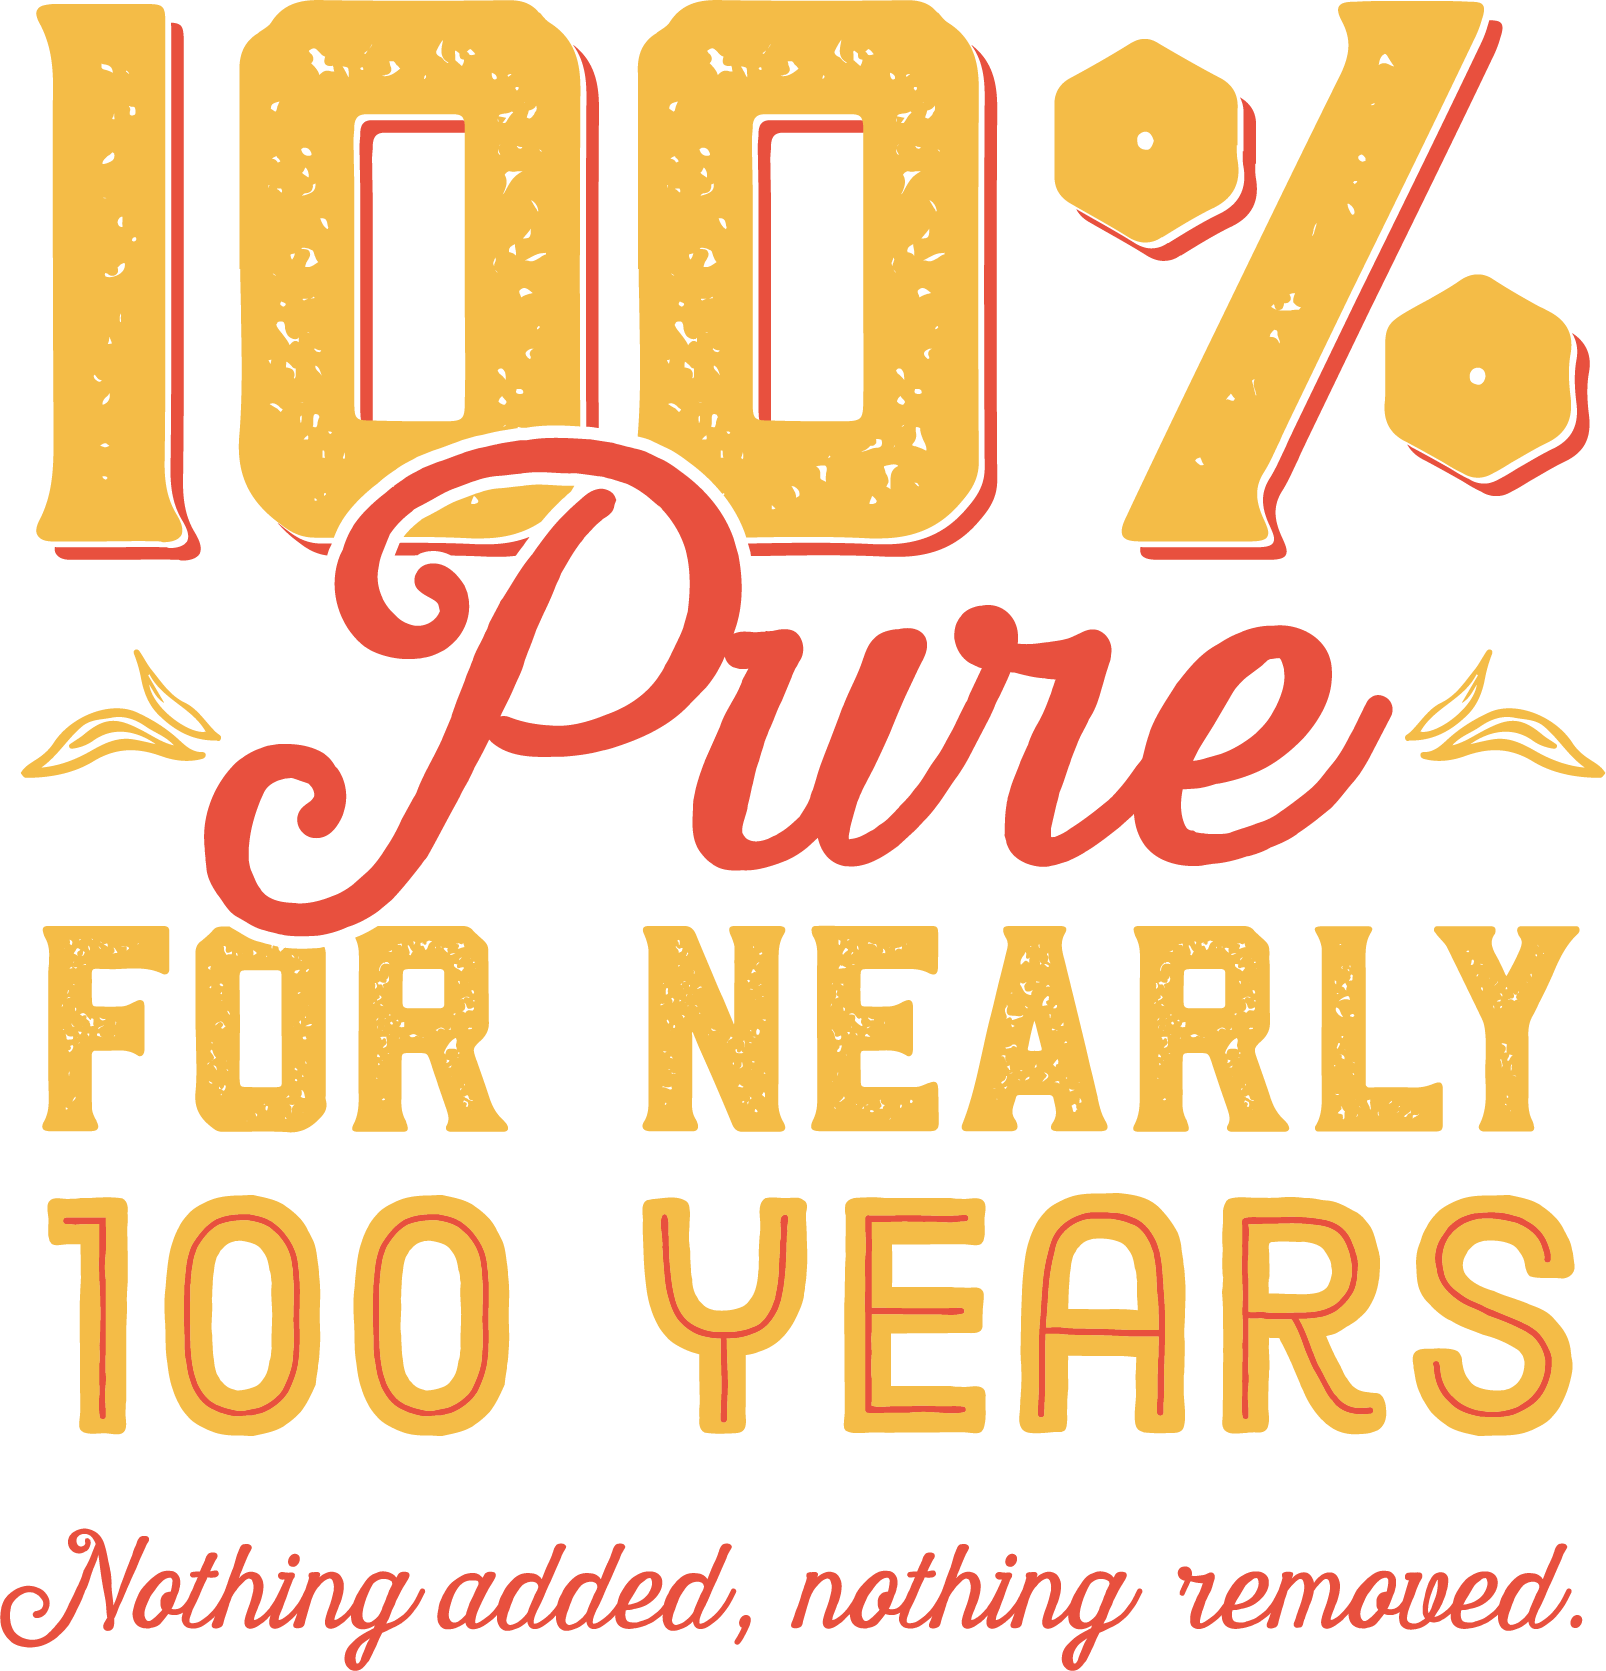 100 percent pure for nearly 100 years